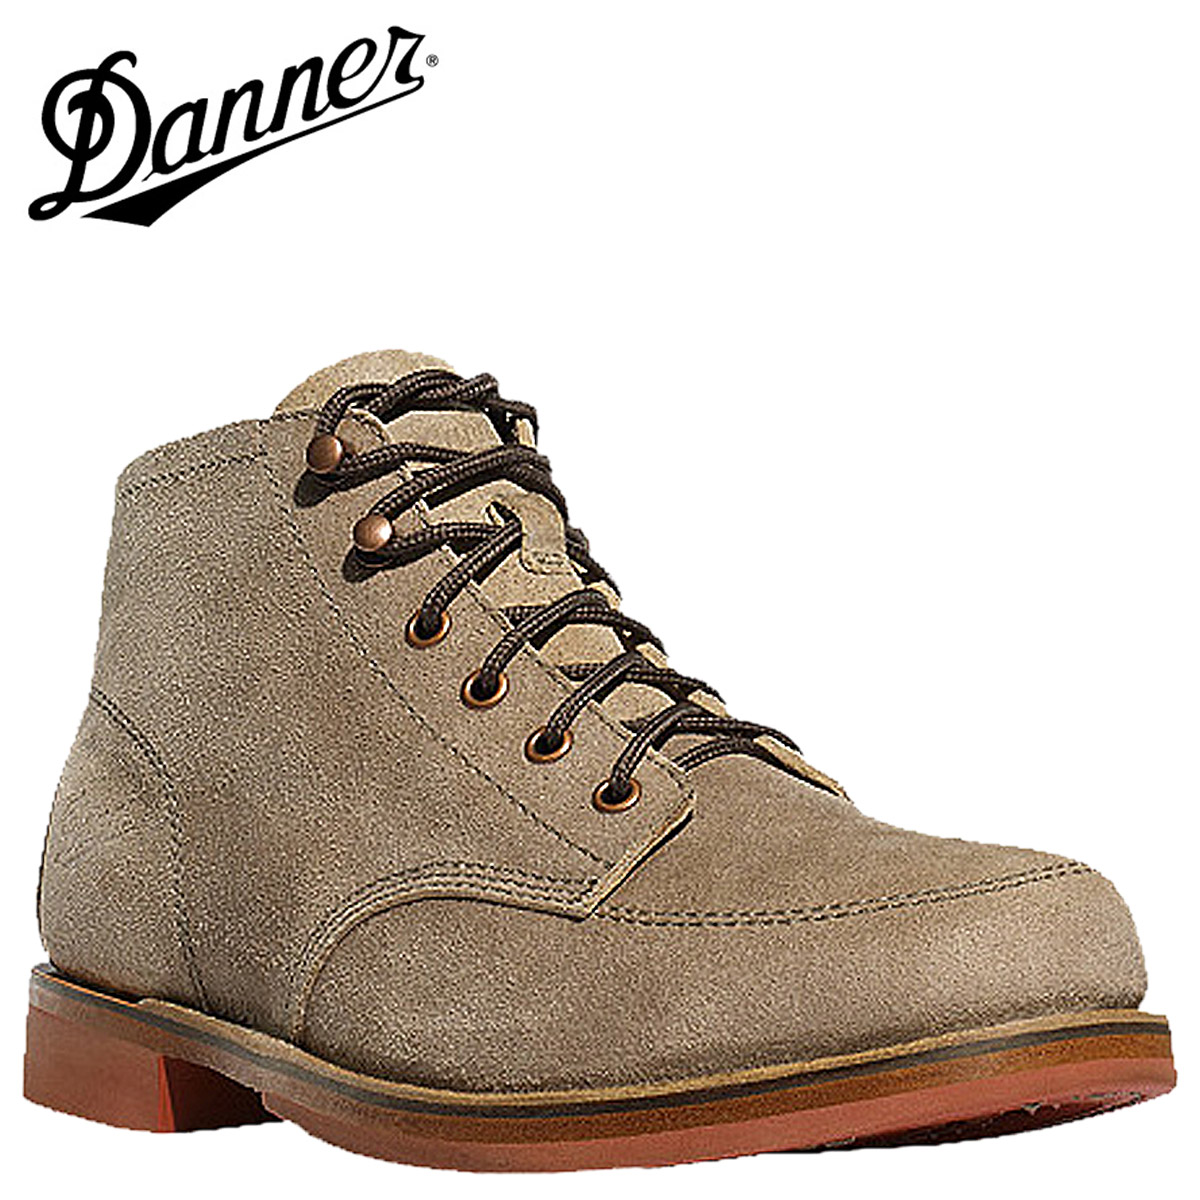 Danner Casual Boots - Yu Boots